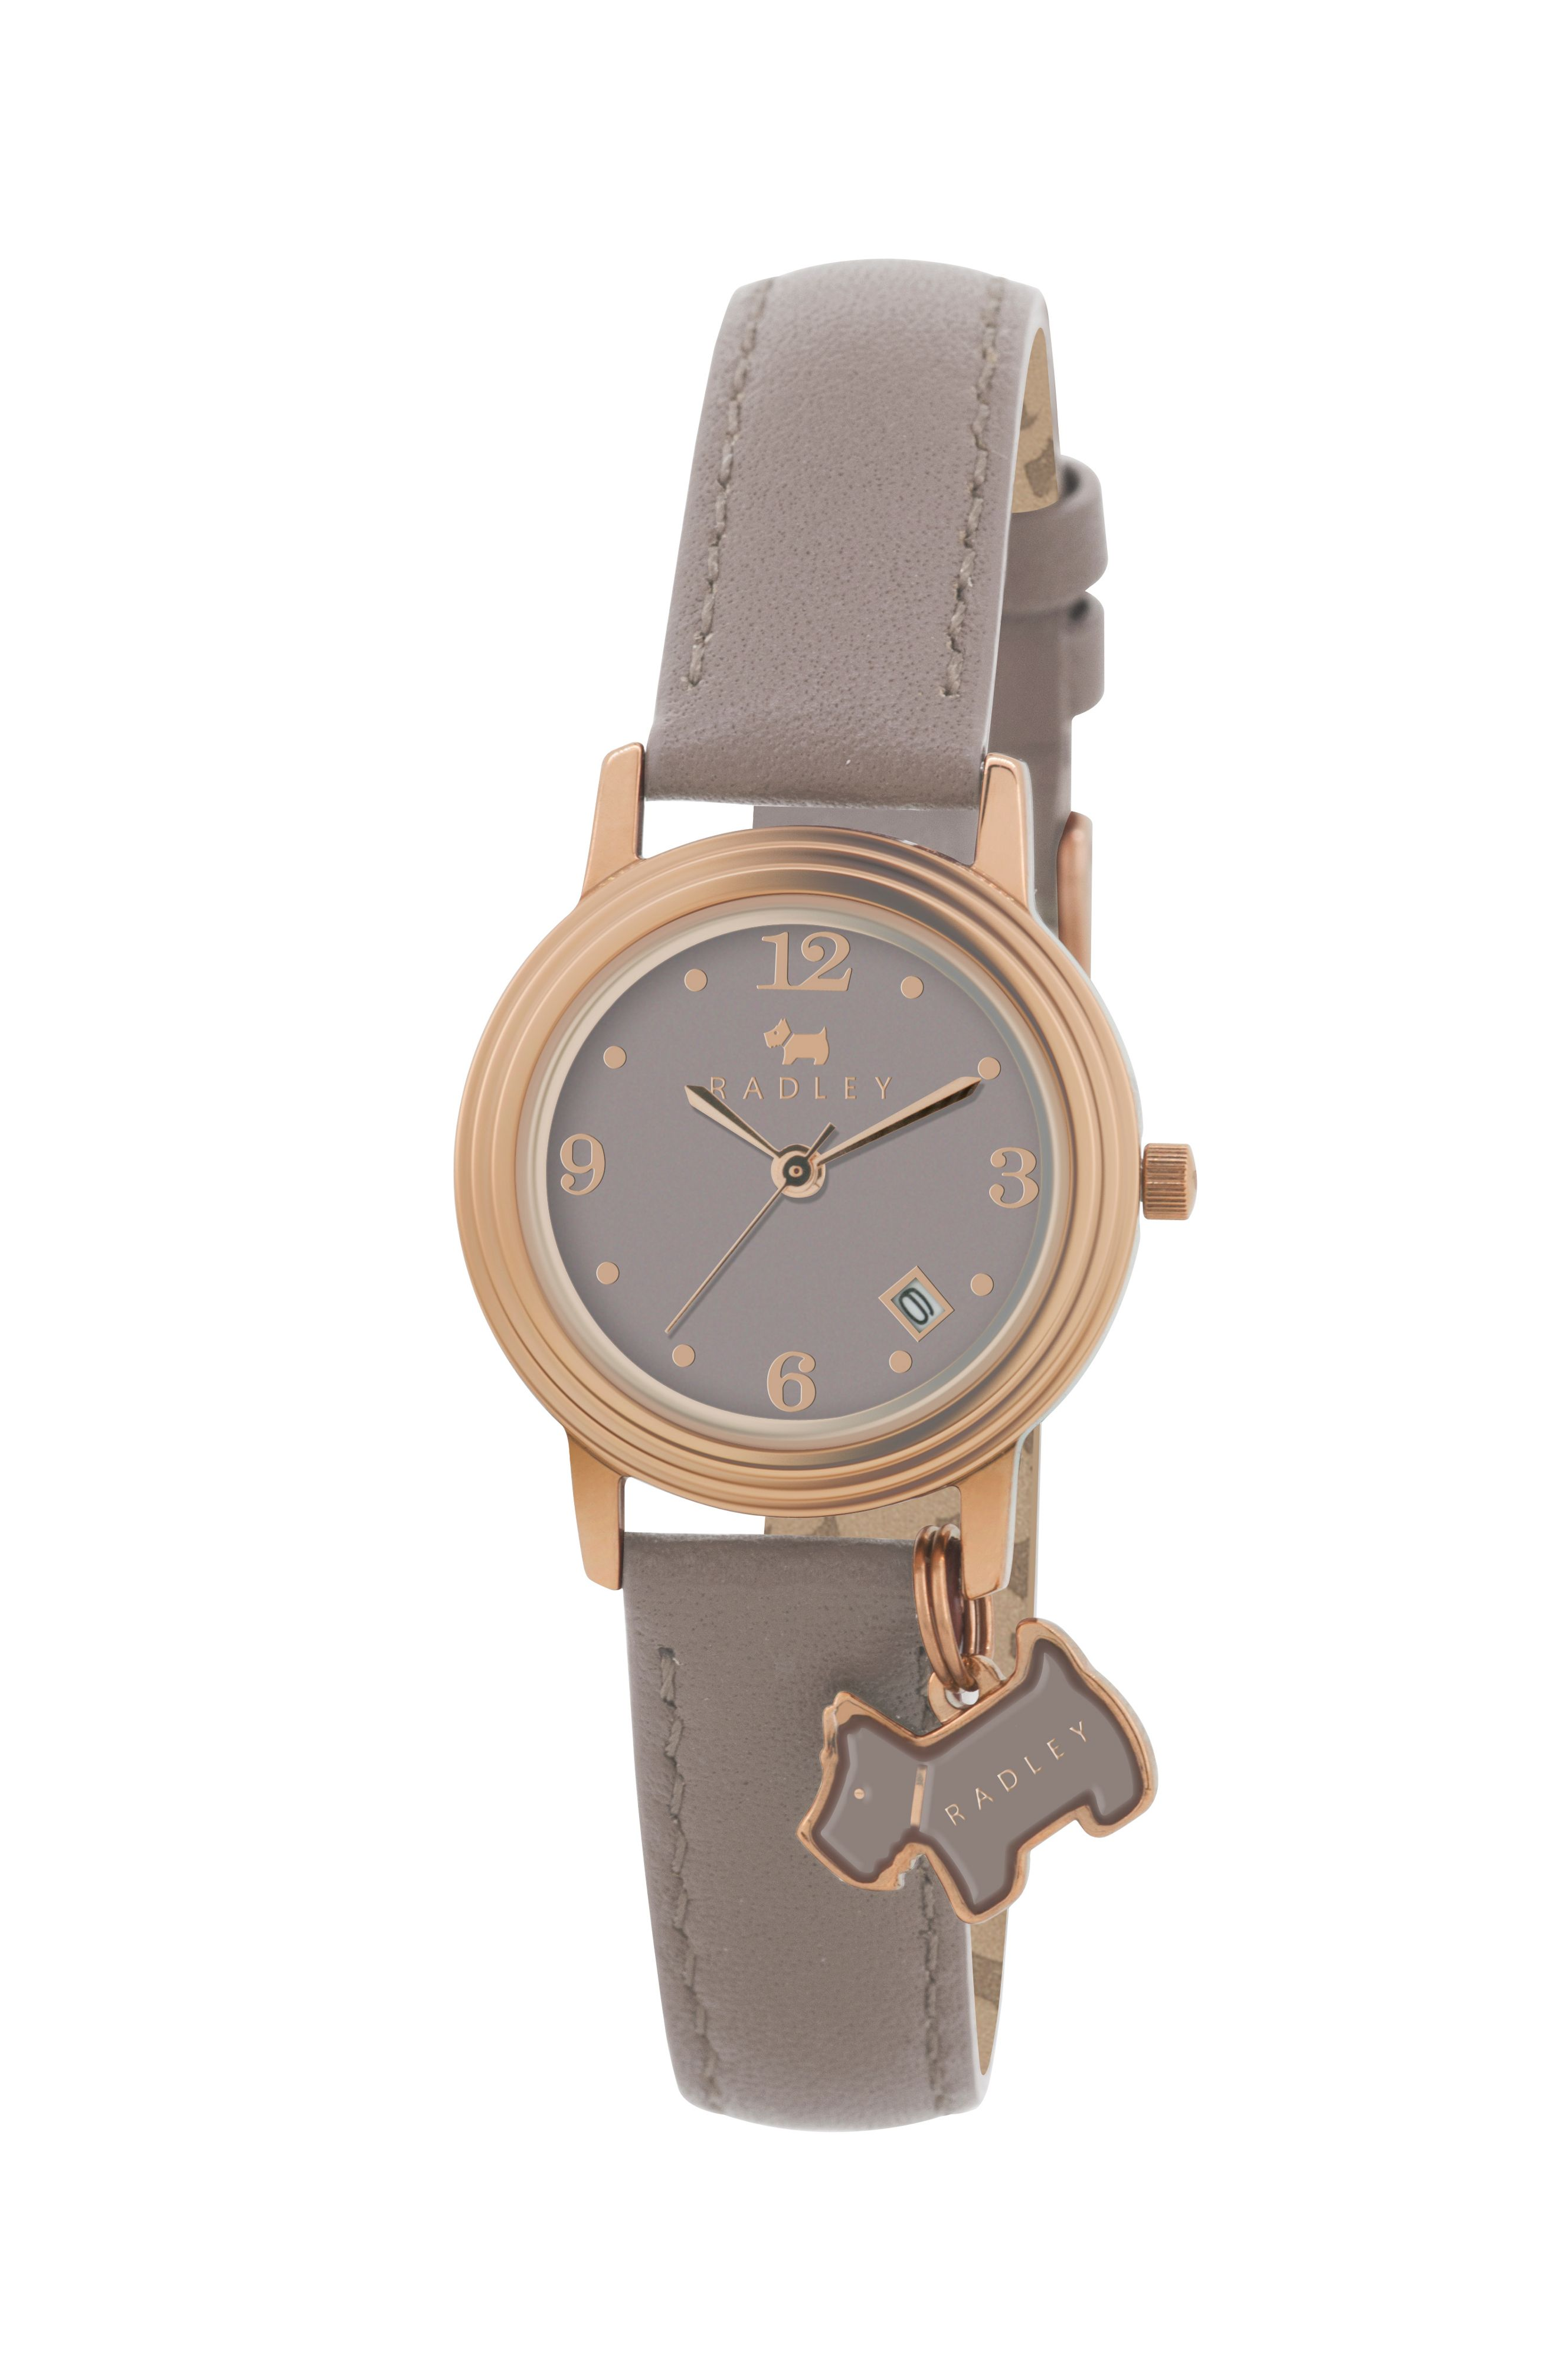 RY2130 rose gold plated leather ladies watch